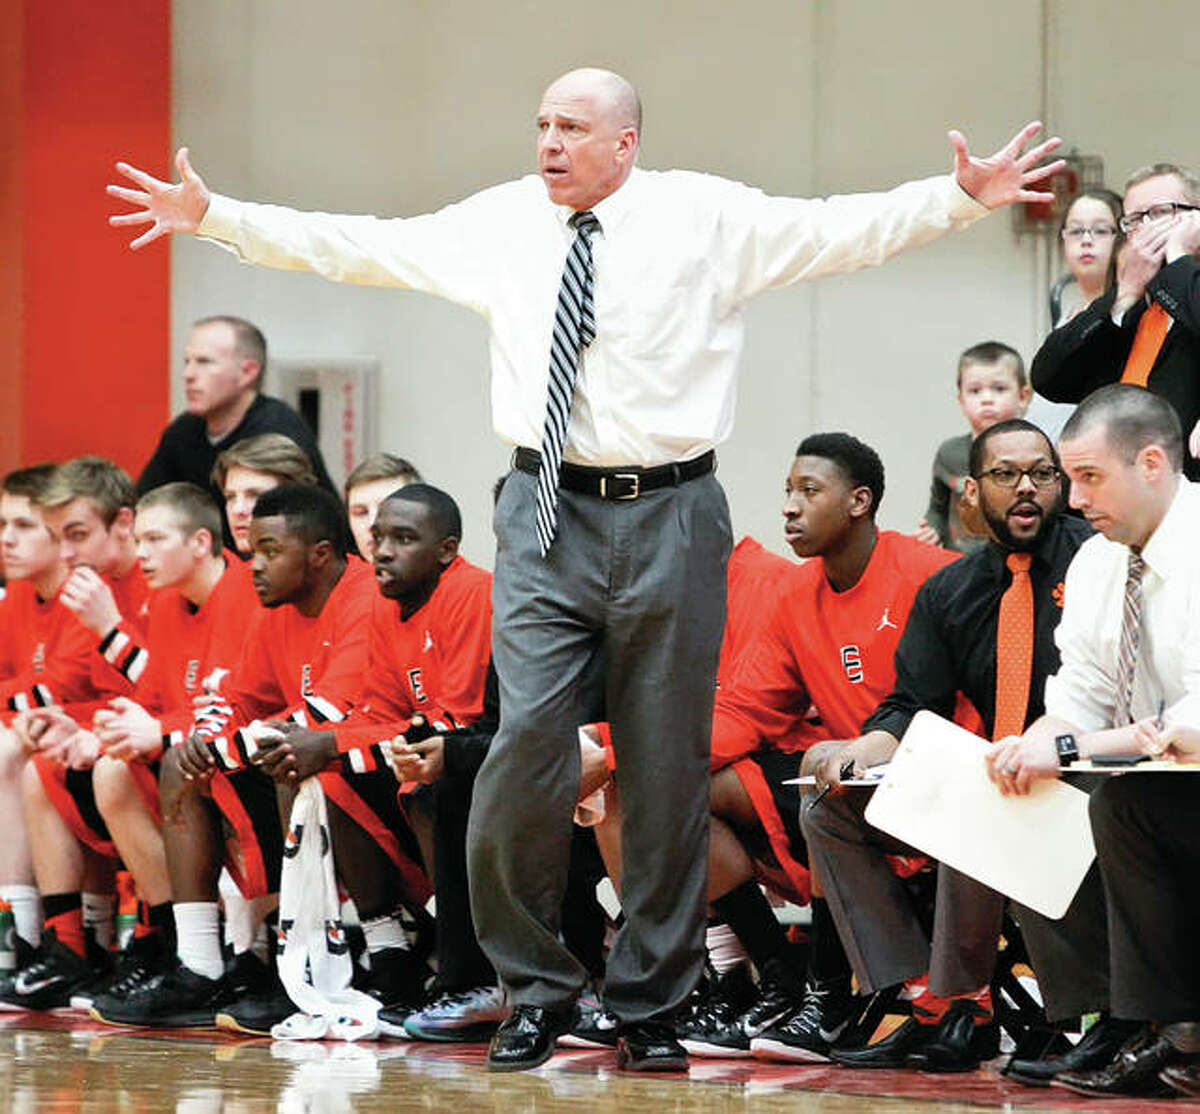 Edwardsville coach Mike Waldo begins enters his 36th season as a head coach and his 31st at Edwardsville with a career record of 709-257.